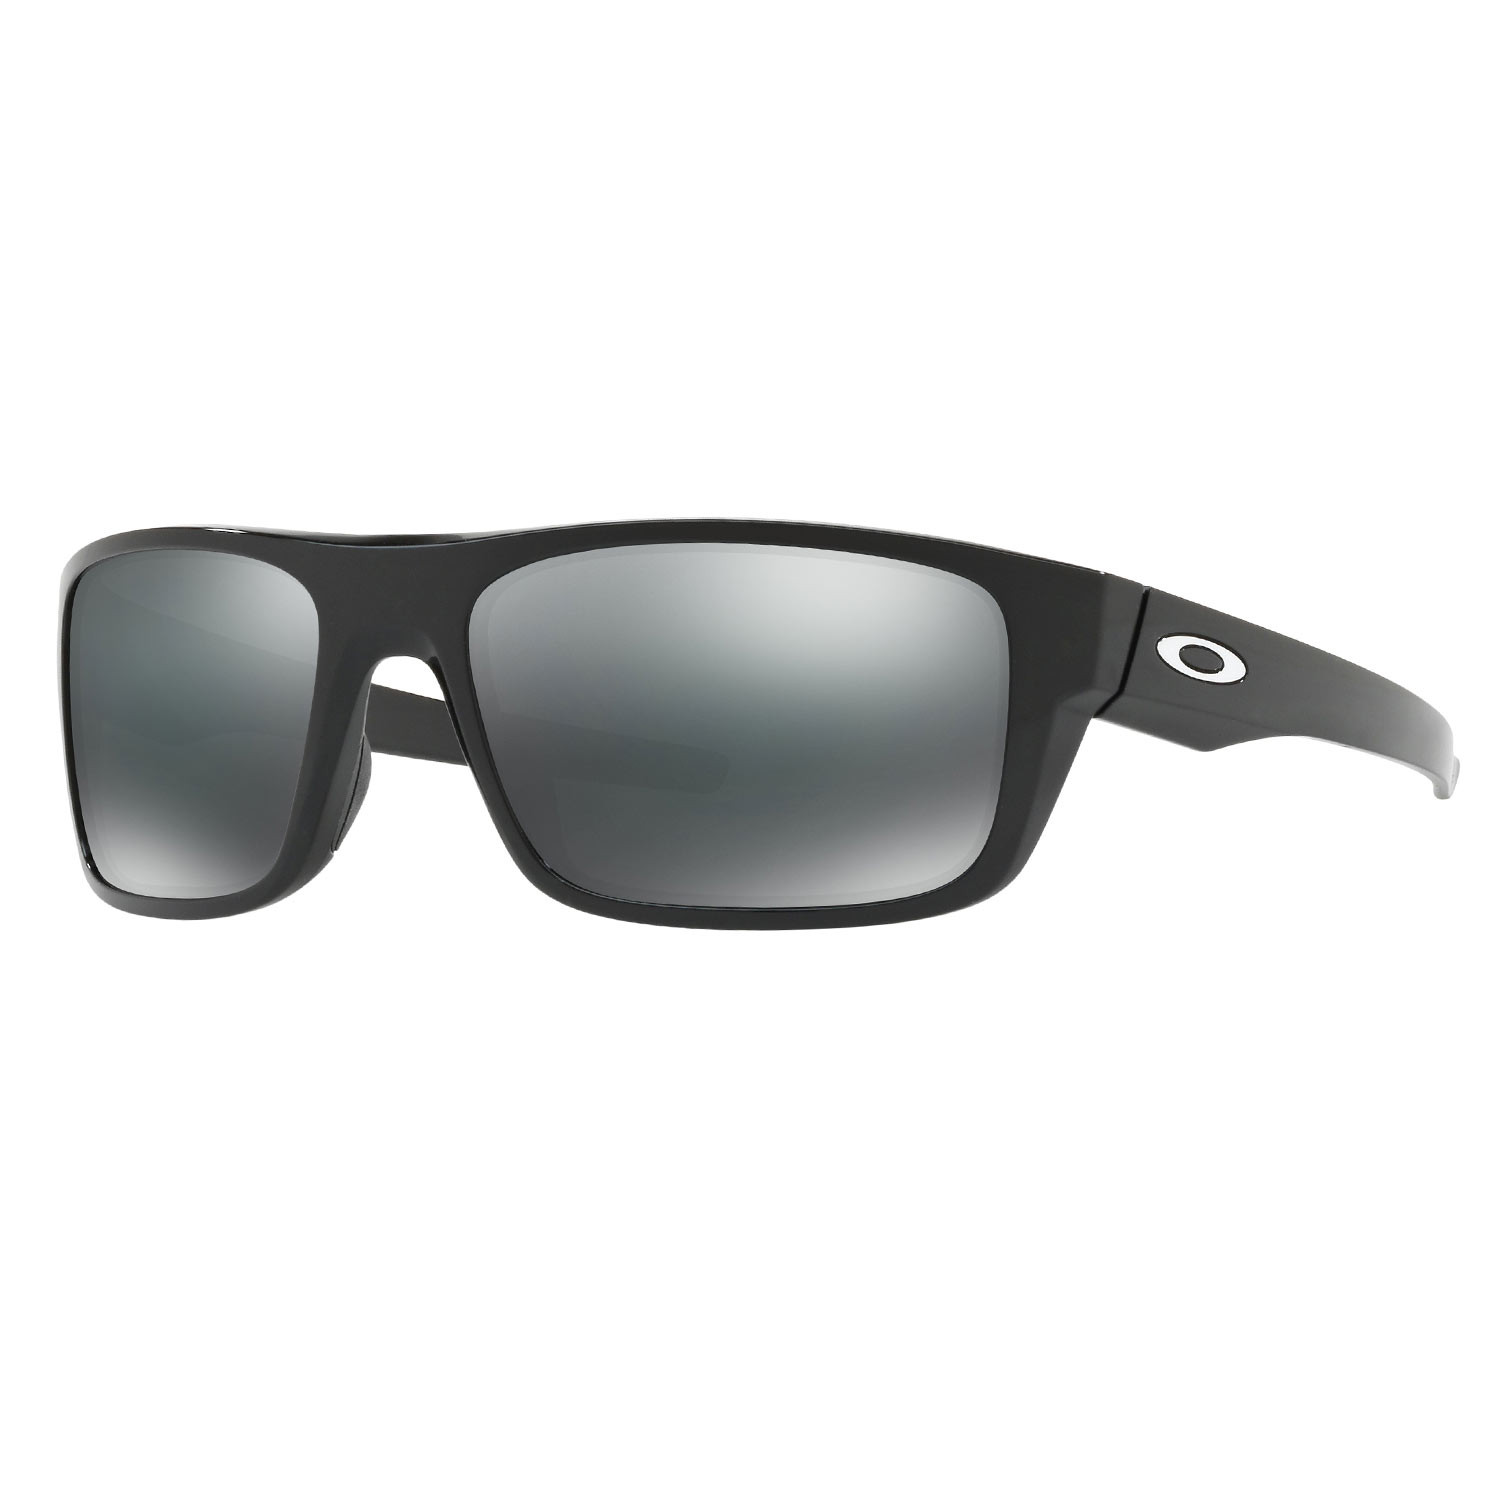 Sluneční brýle Oakley Drop Point polished black